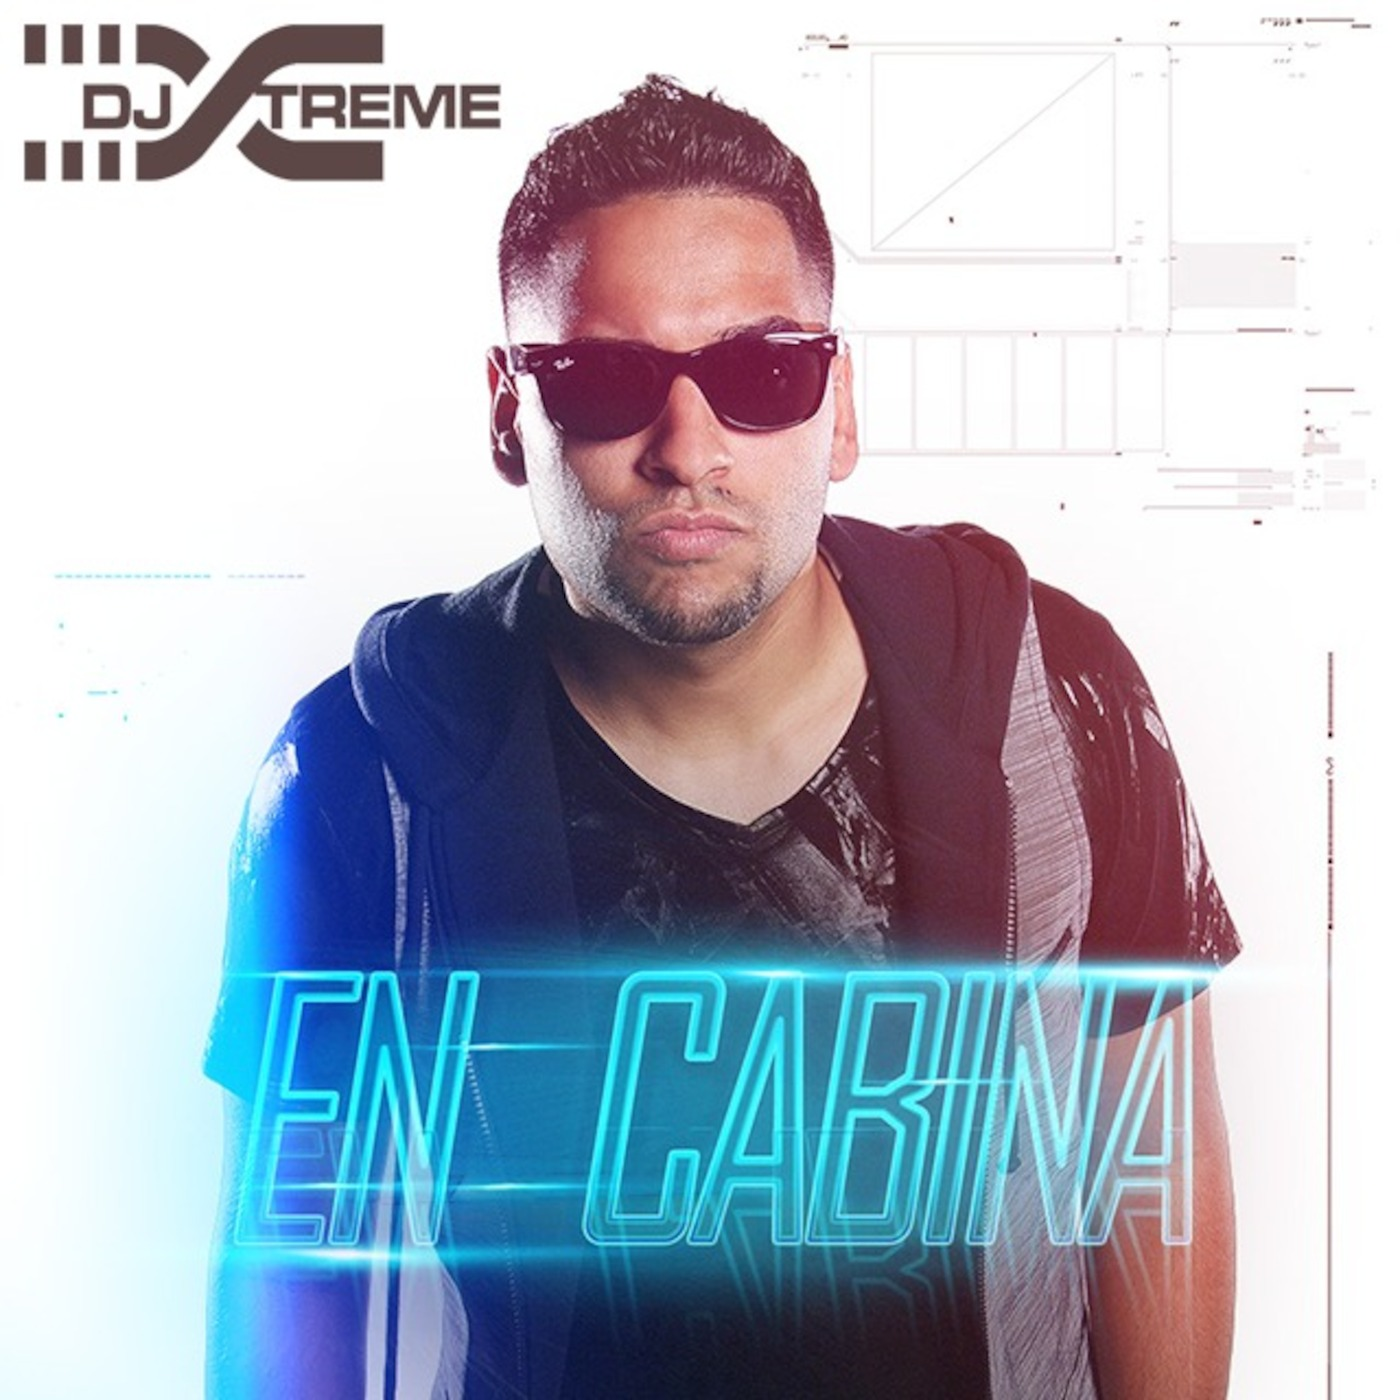 En Cabina With Dj Xtreme